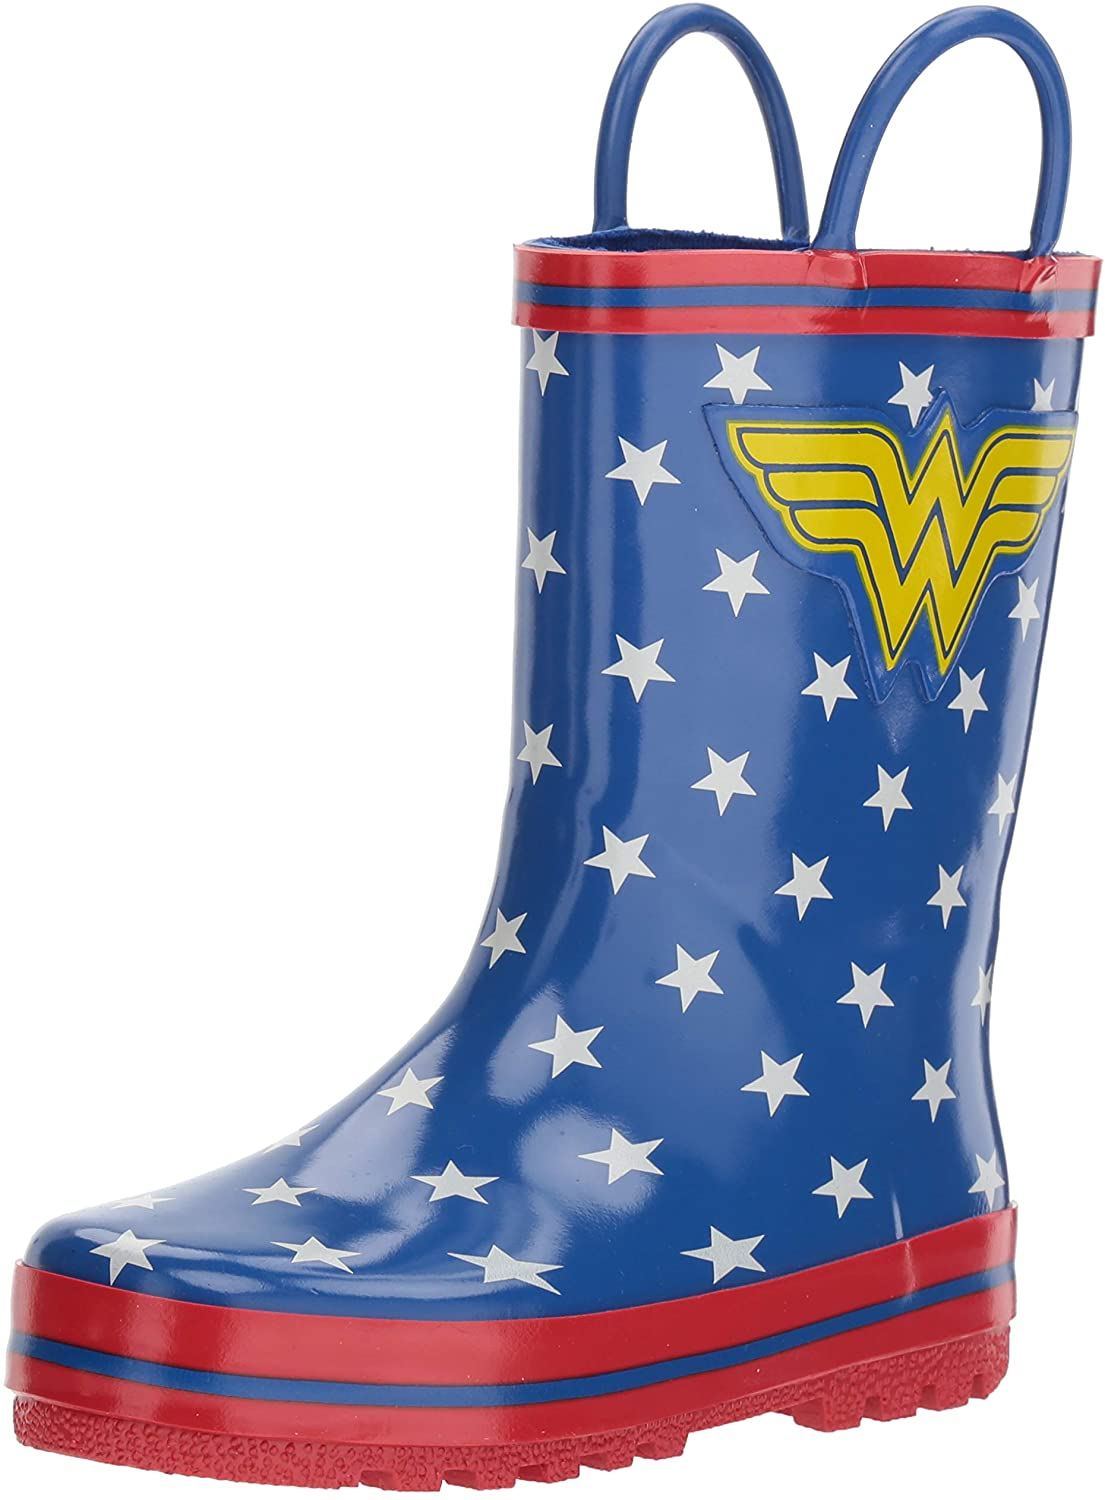 Favorite Characters Girl's Wonder Woman Rain Boot (Toddler/Little Kid)